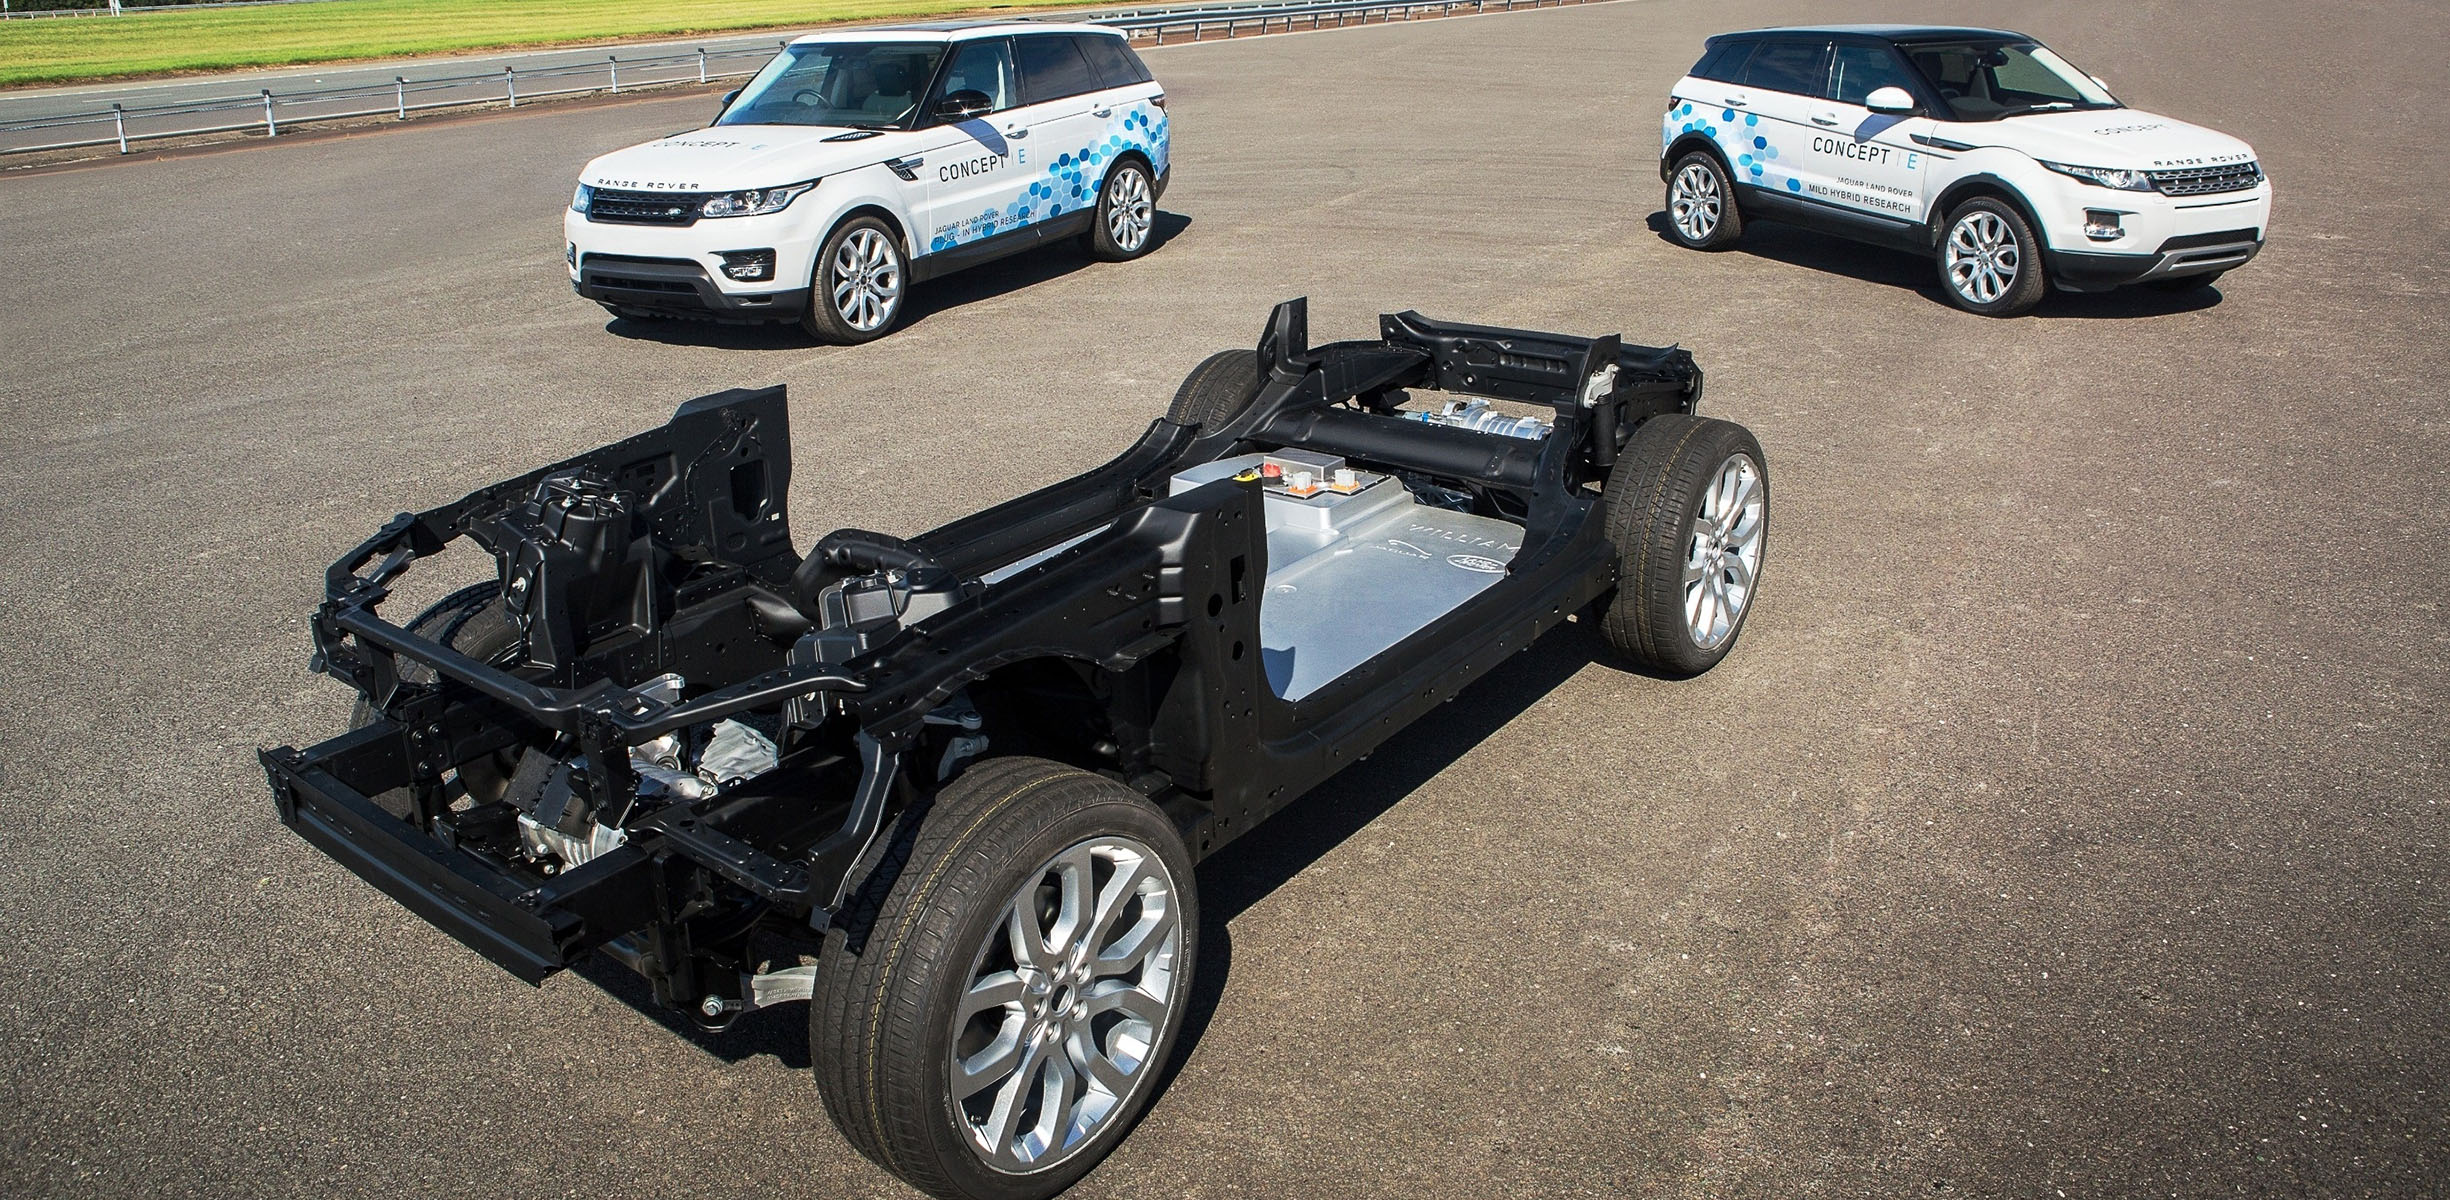 Jaguar Land Rover shows the new prototype of hybrid SUV